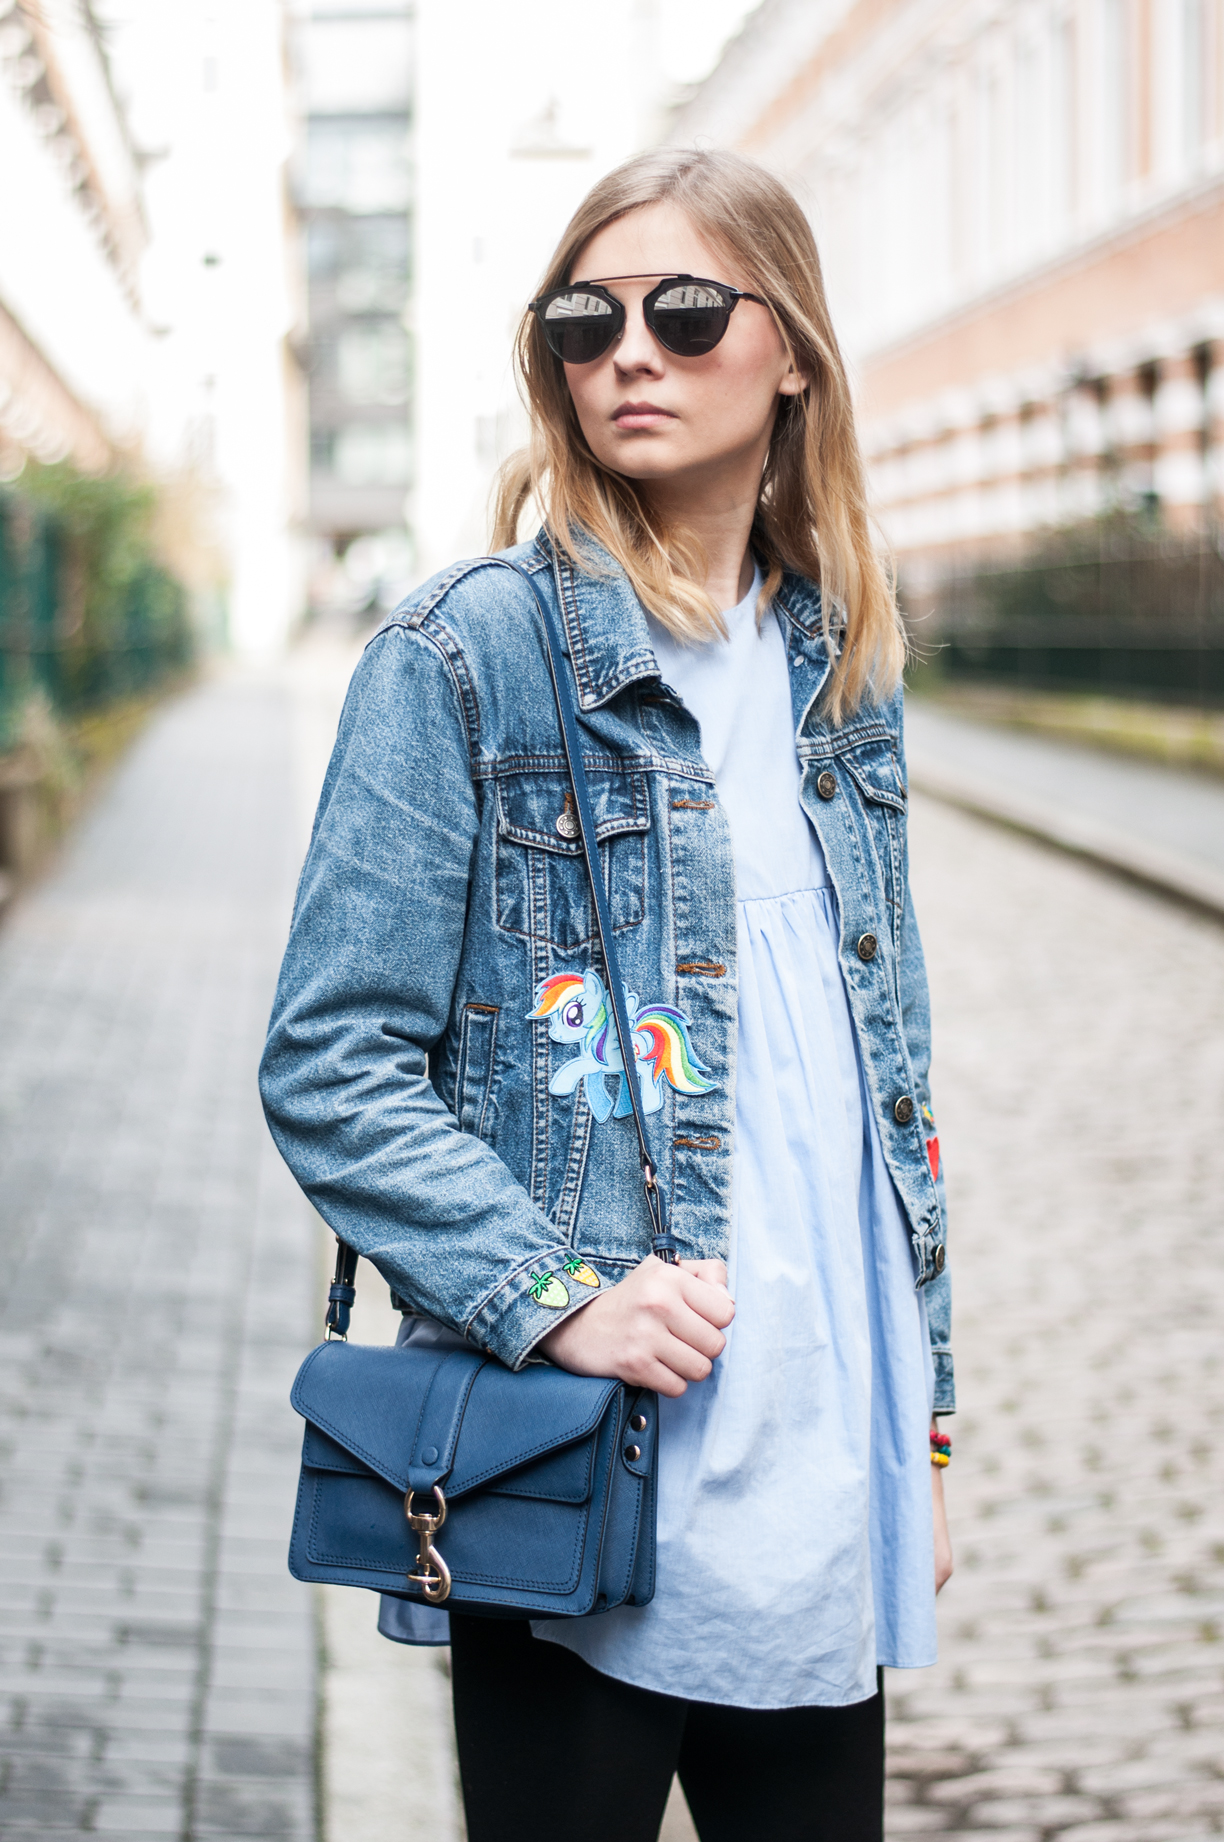 Jeansjacke mit Patches Zara Kleid